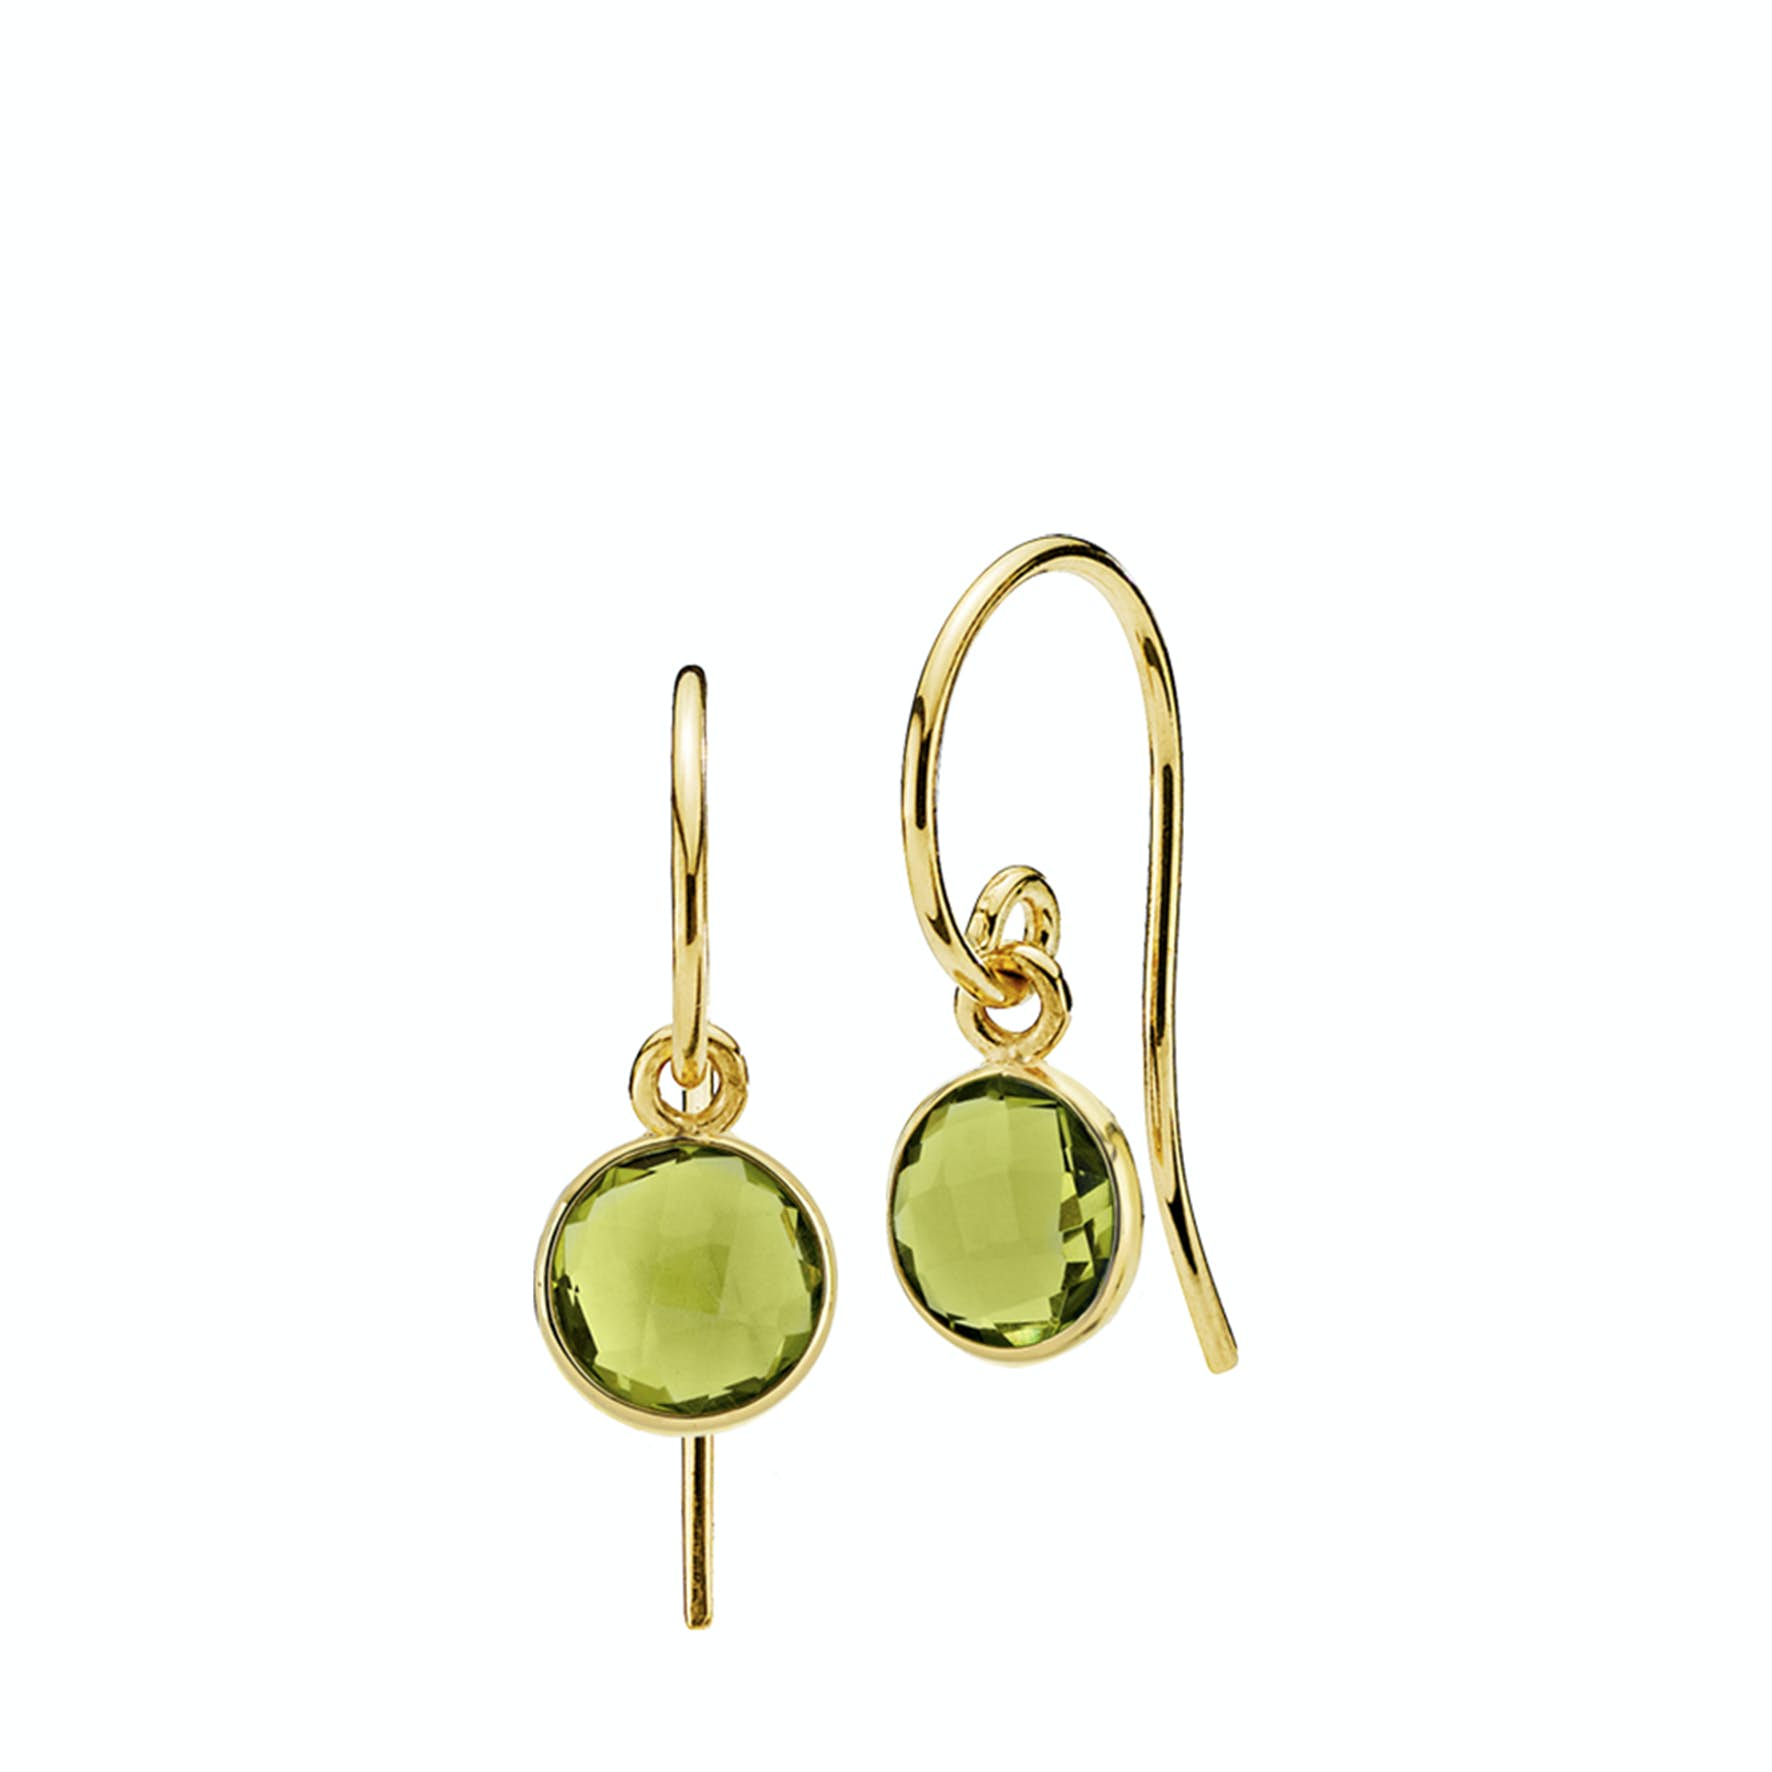 Prima Donna Earrings Small Peridot Green from Izabel Camille in Goldplated-Silver Sterling 925|Peridot Green